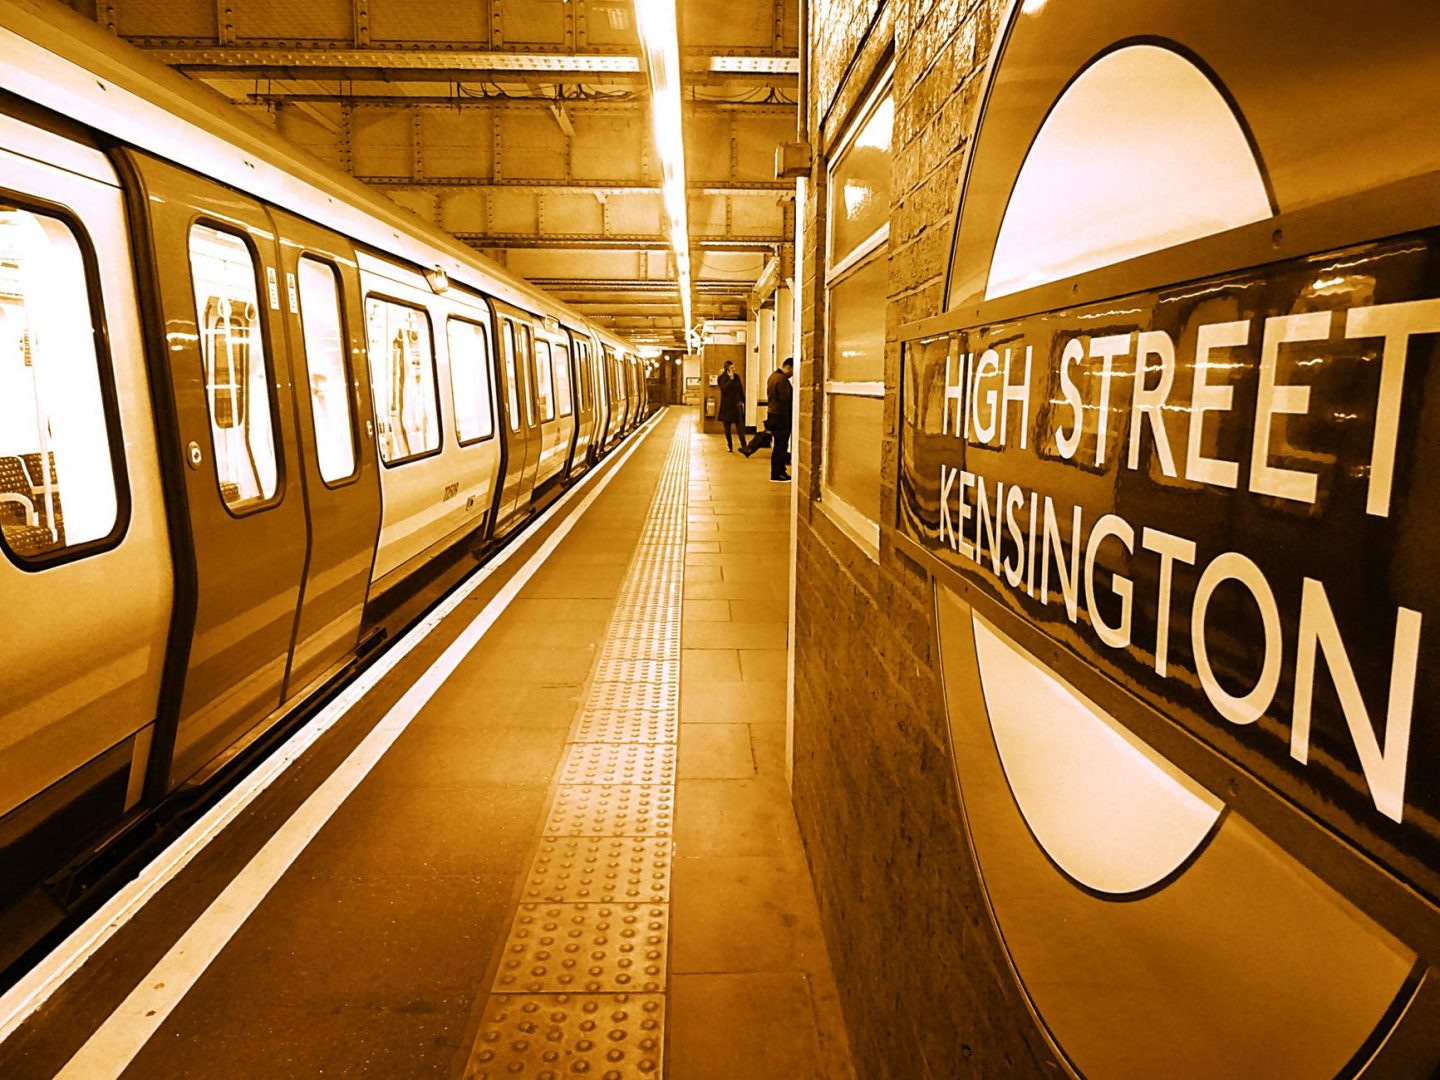 London Life: Could You Travel Abroad For The Cost of Your Commute?